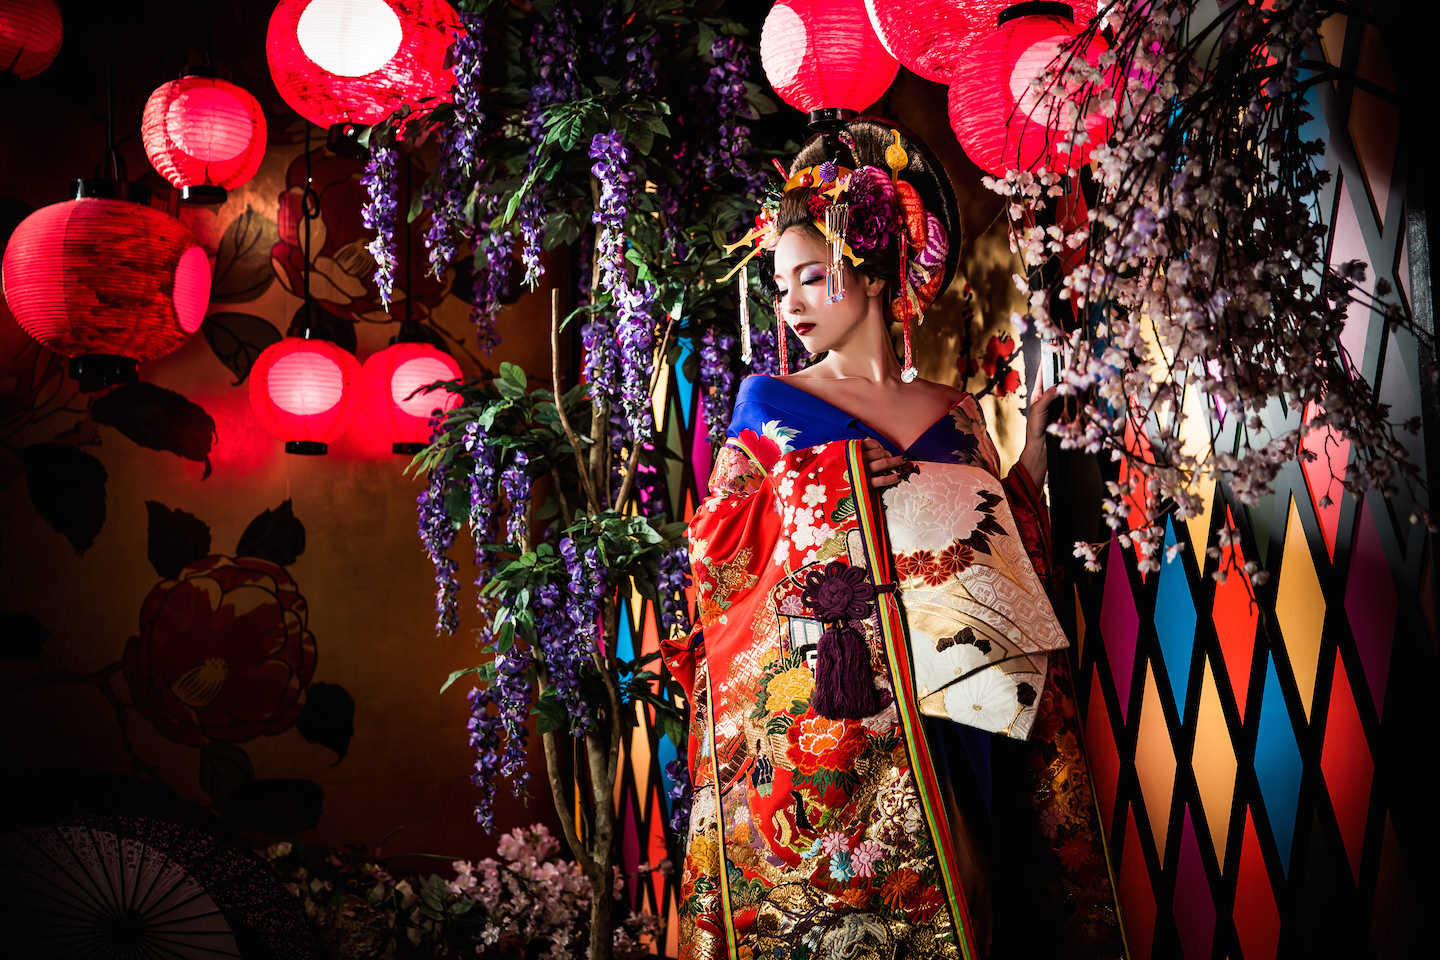 Picture of sexy oiran dressed up with colorful Kimono for make-over photo shoot in Kyoto, Japan. Photo taken by Studio Esperanto.